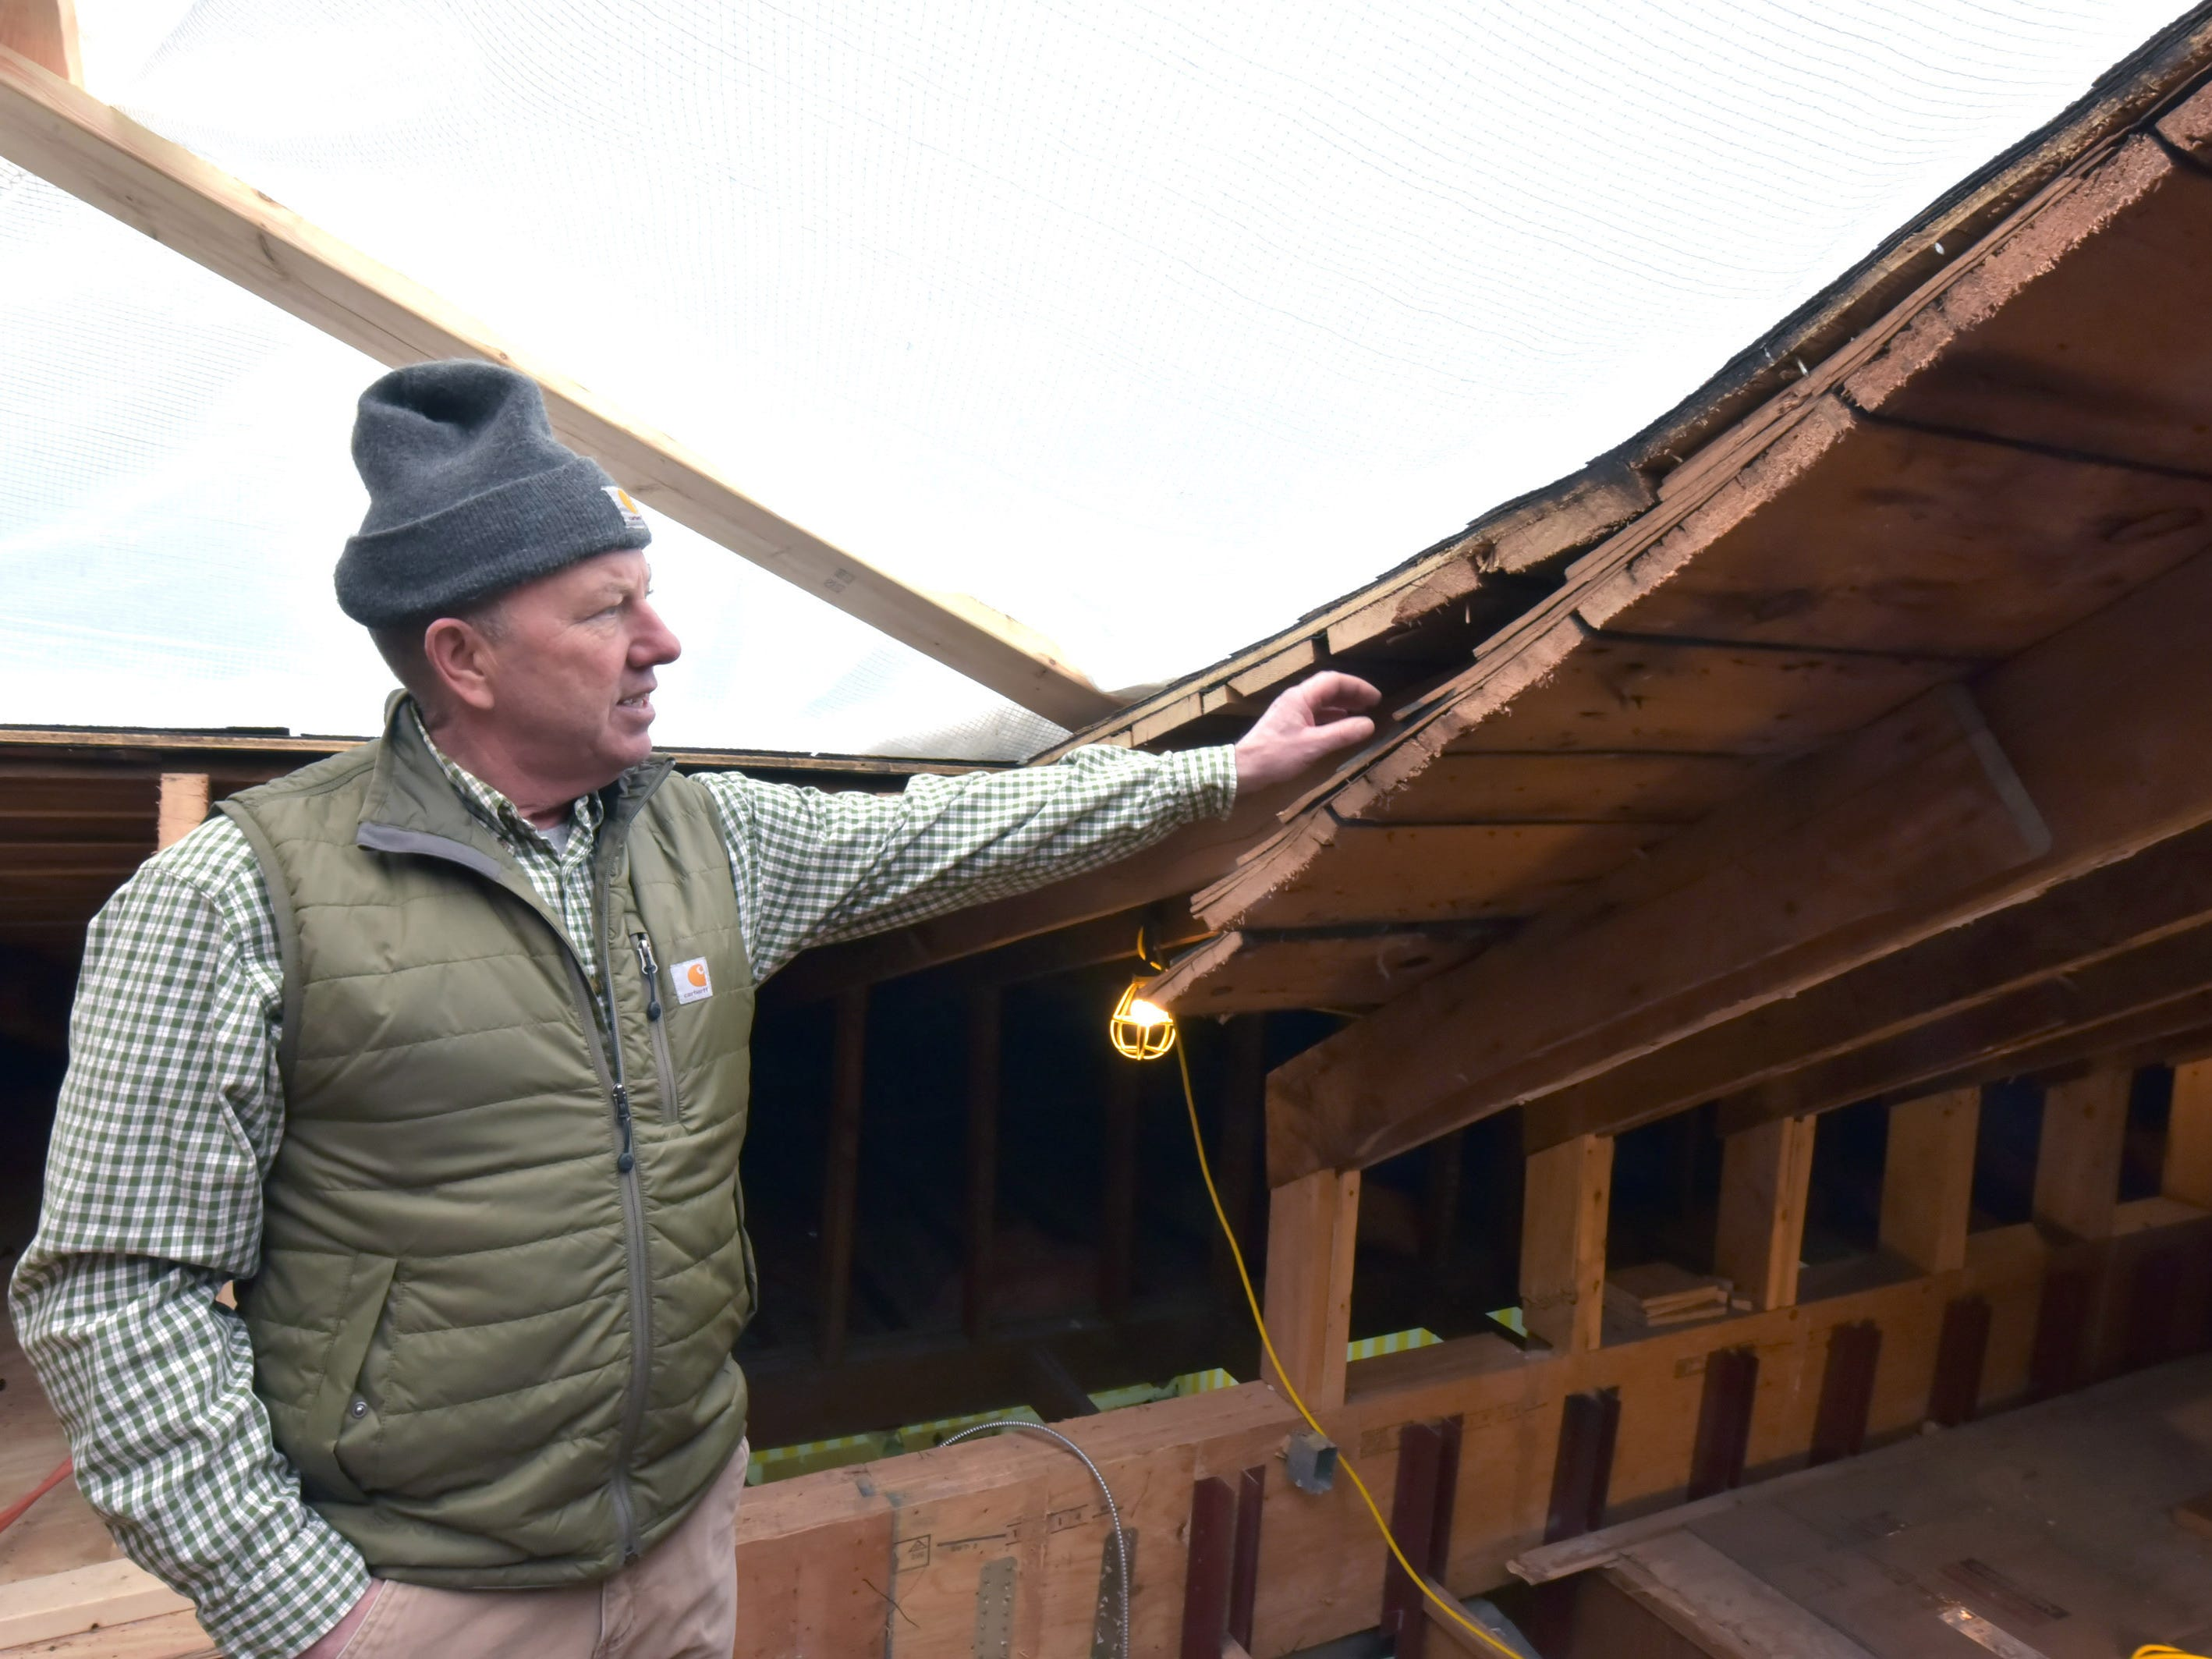 Andy McGreevy, construction project manager at Mackinac Island's iconic Grand Hotel, shows the original roofline on the fourth floor.